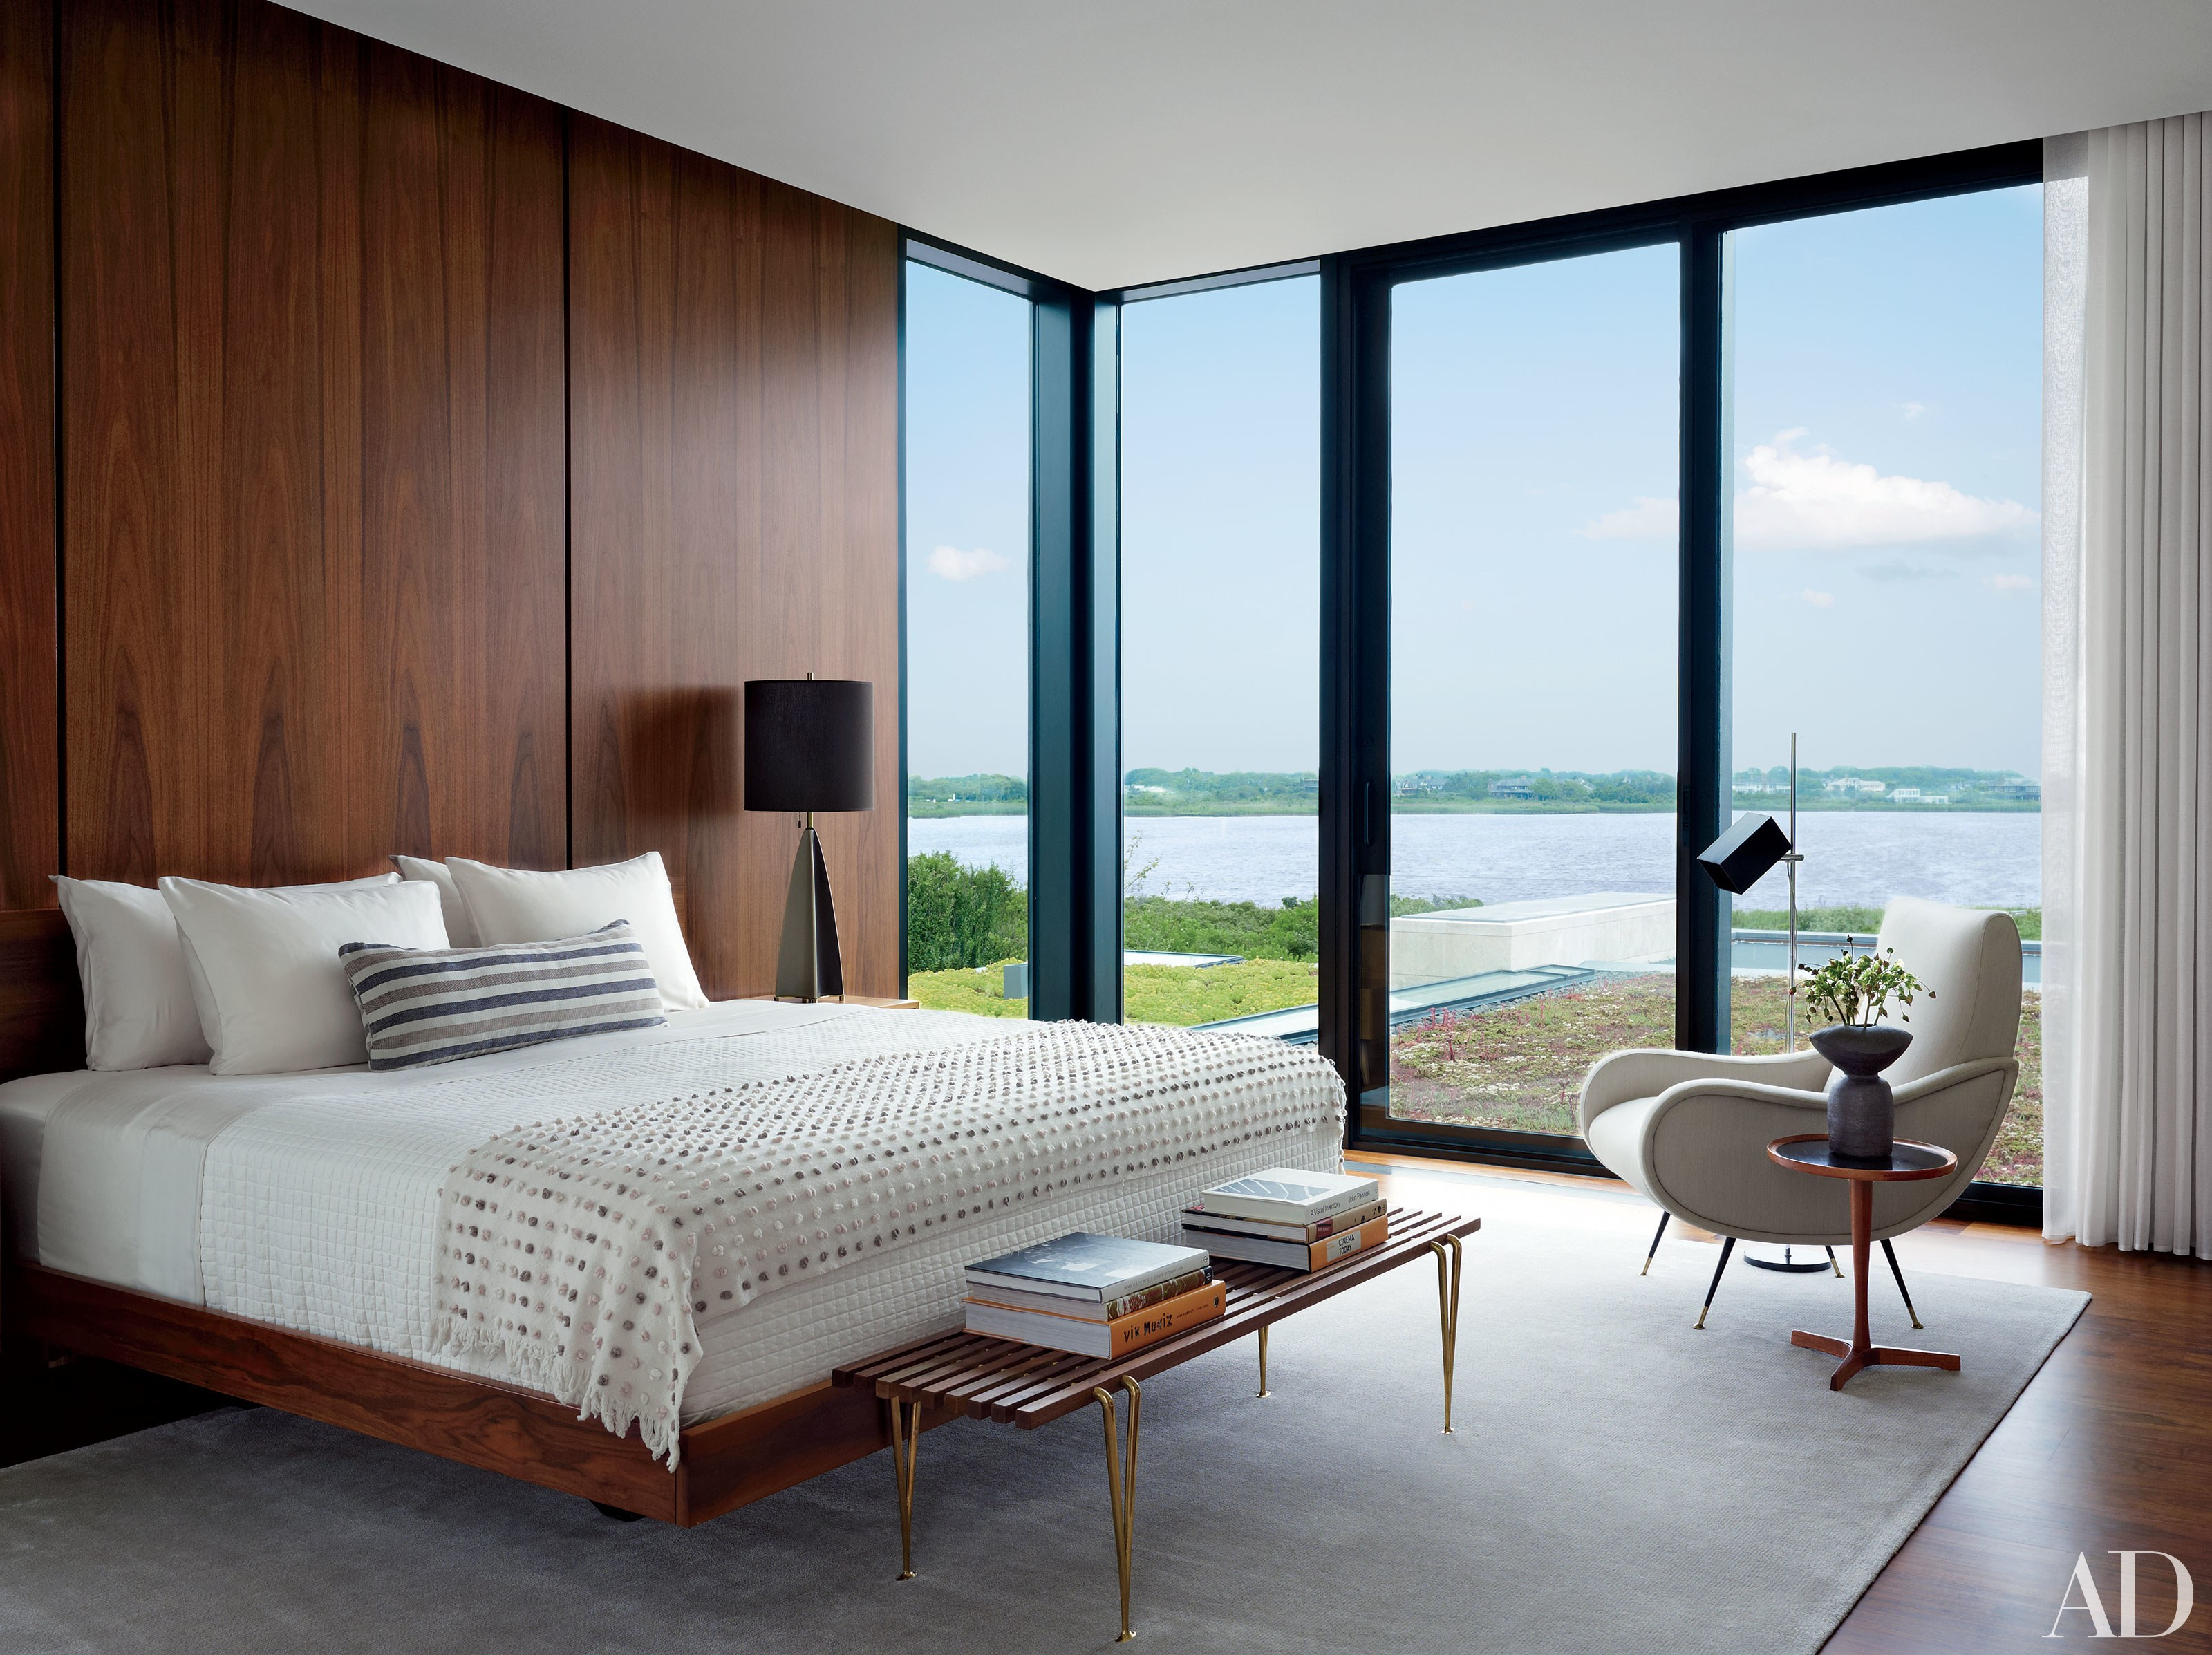 24 Contemporary Bedrooms With Sleek And Serene Style Architectural regarding Modern Bedroom Design Ideas